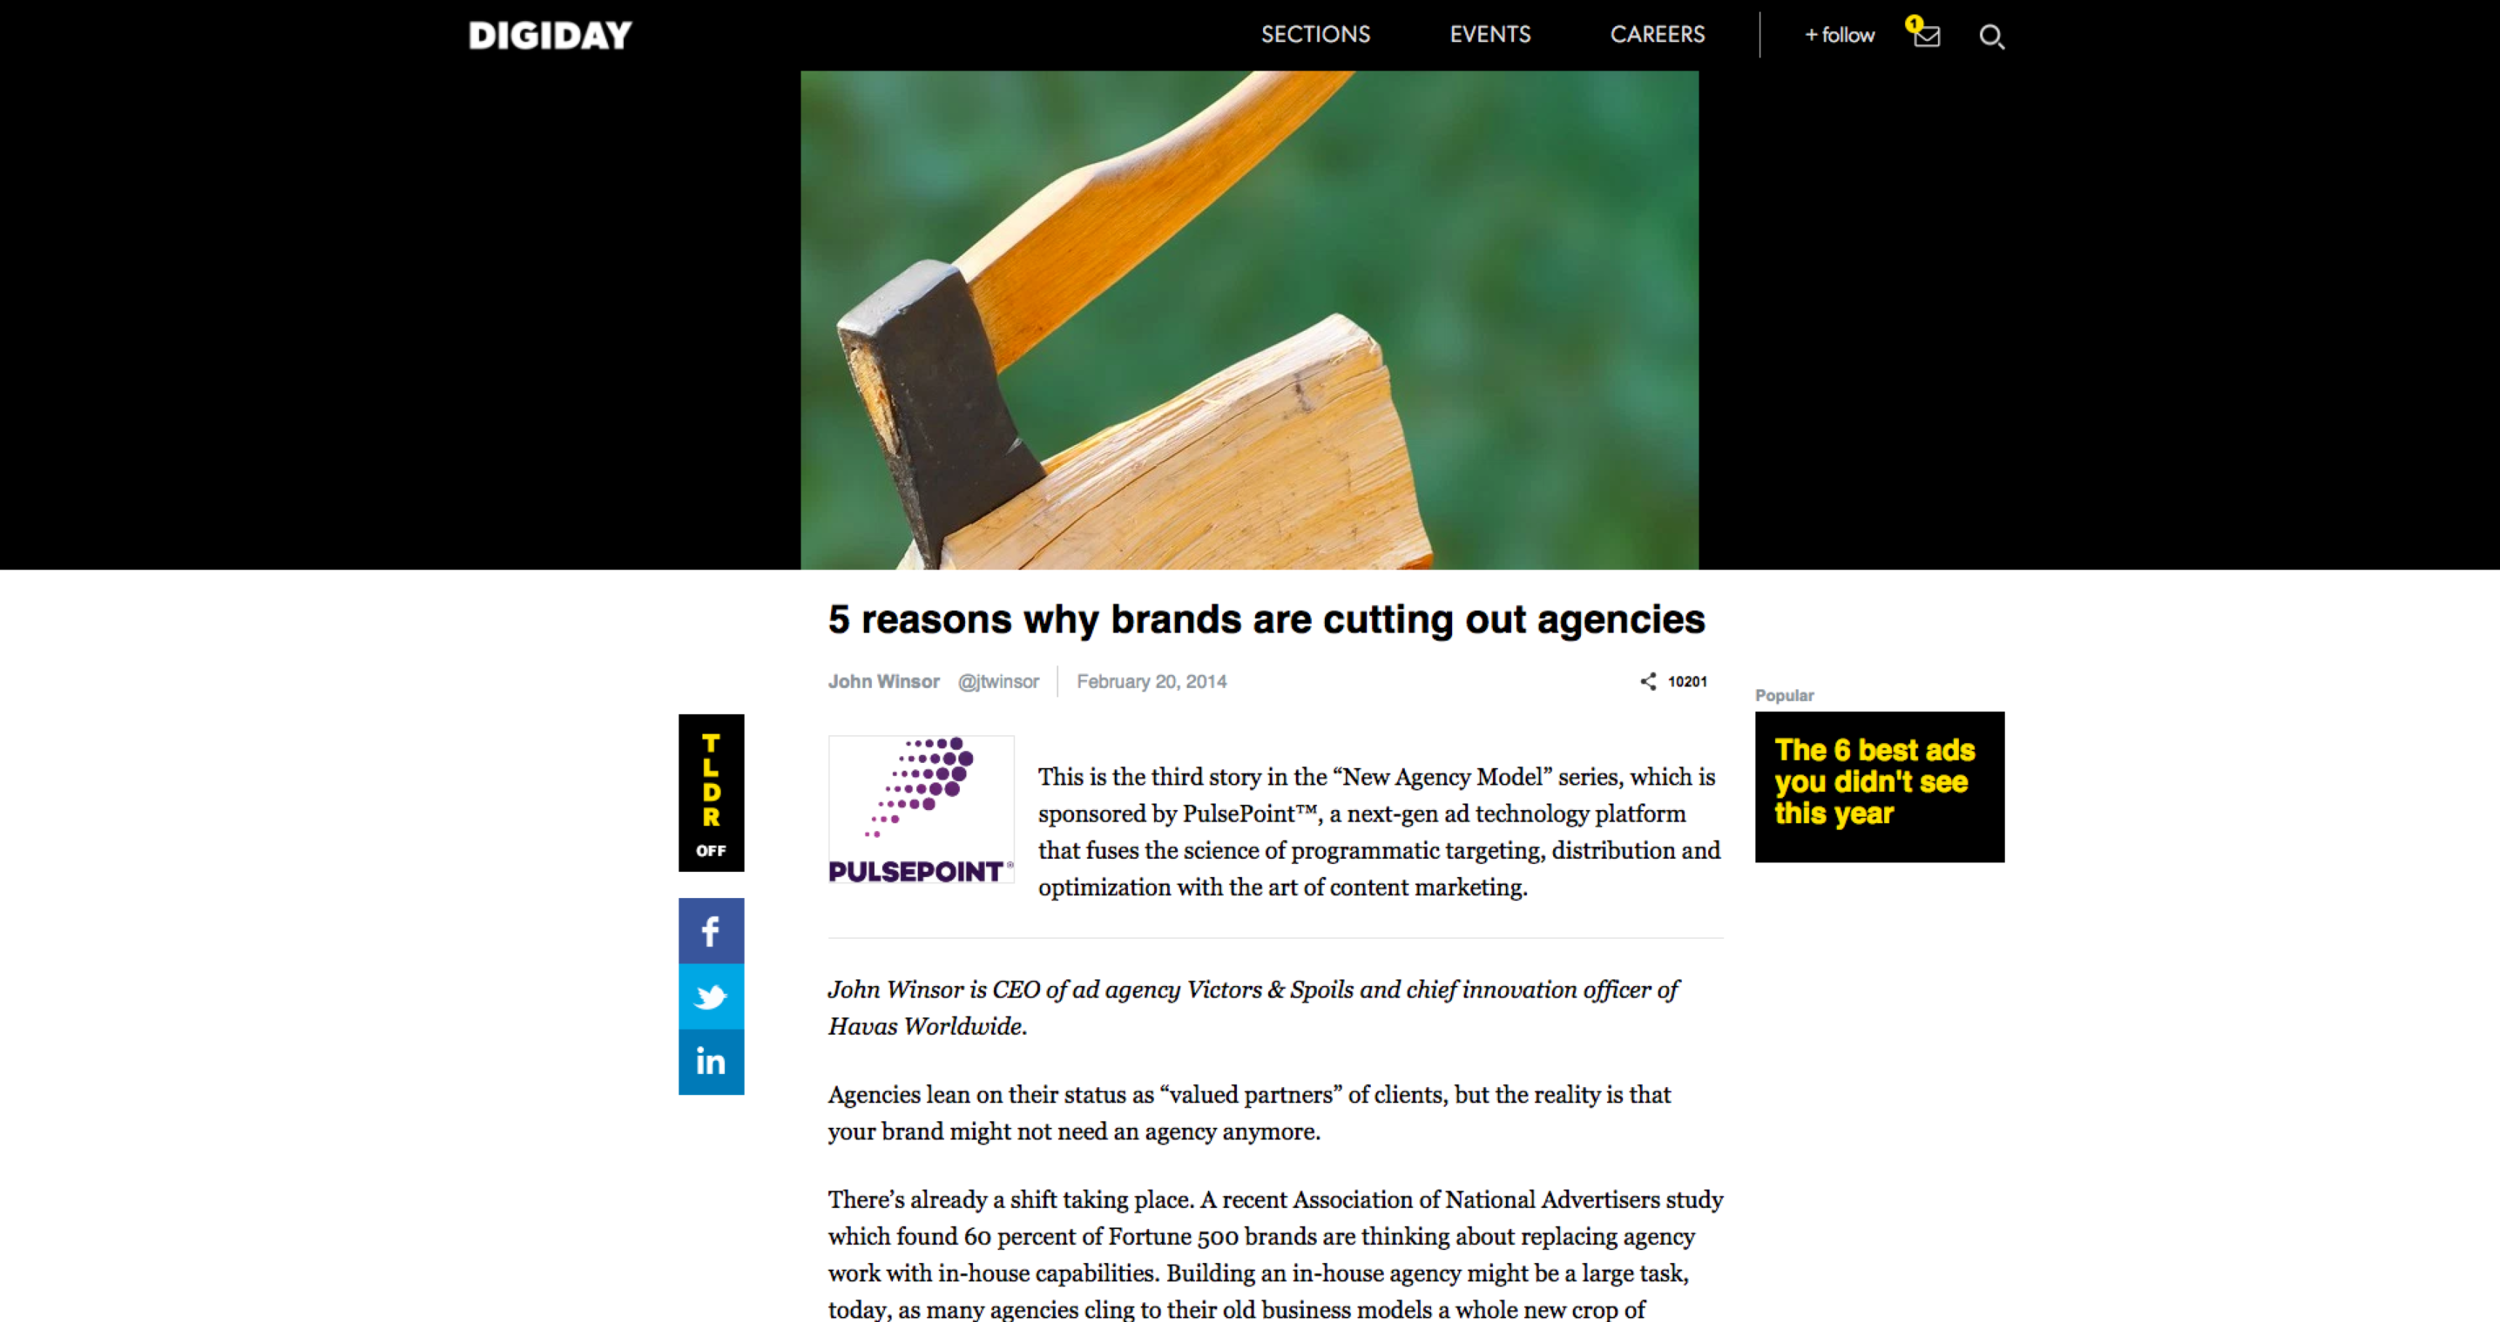 5 Reasons Why Brands are Cutting Out Agencies